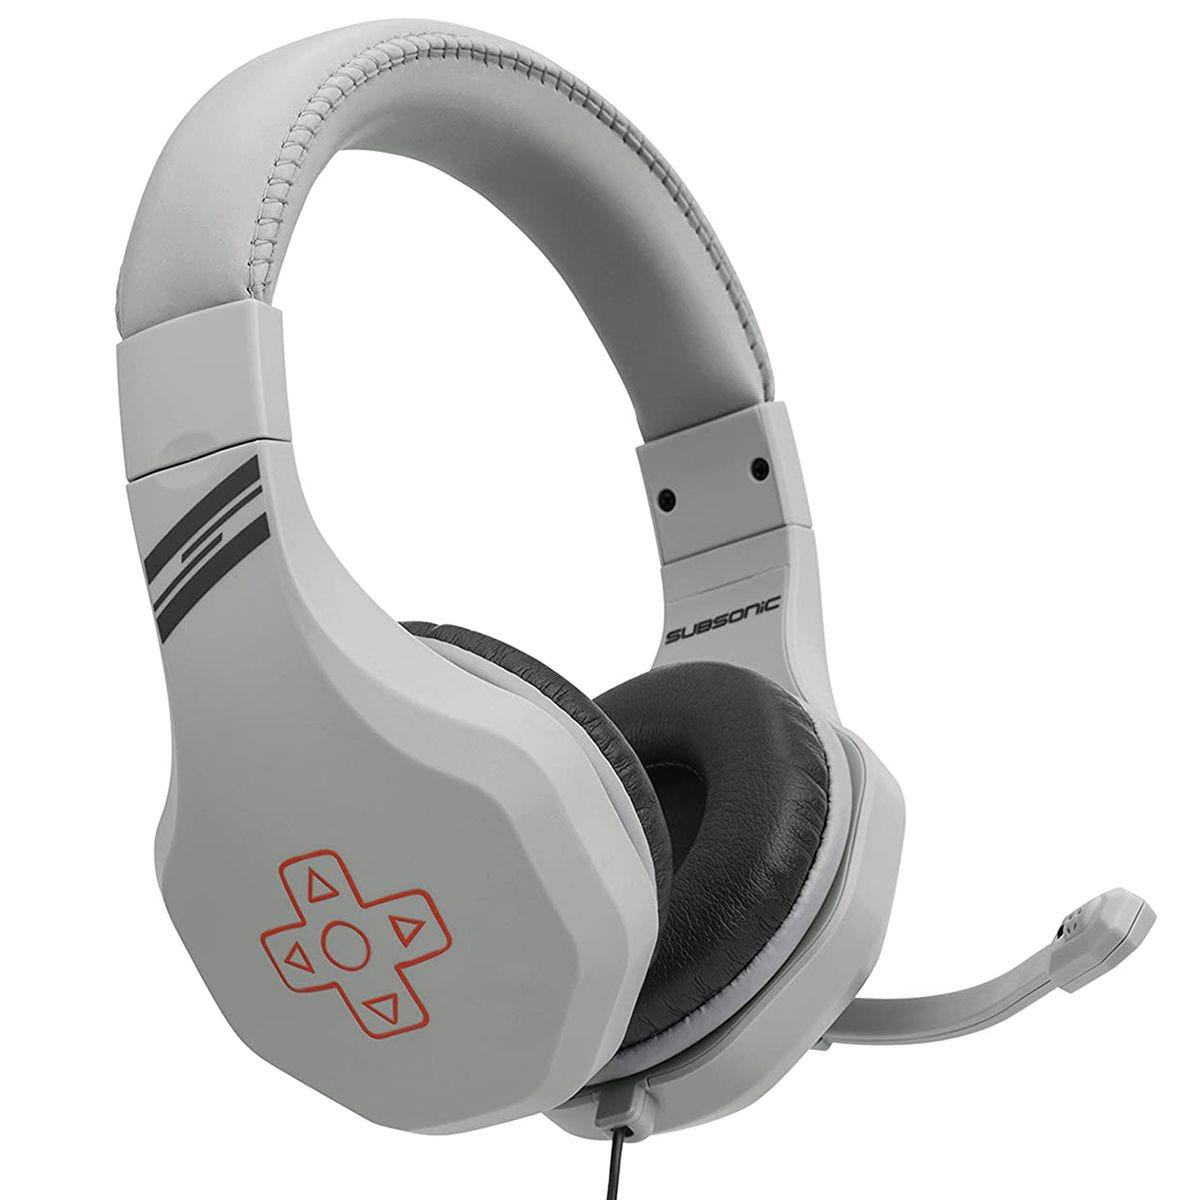 Subsonic Retro Gaming Headset with Microphone - Grey